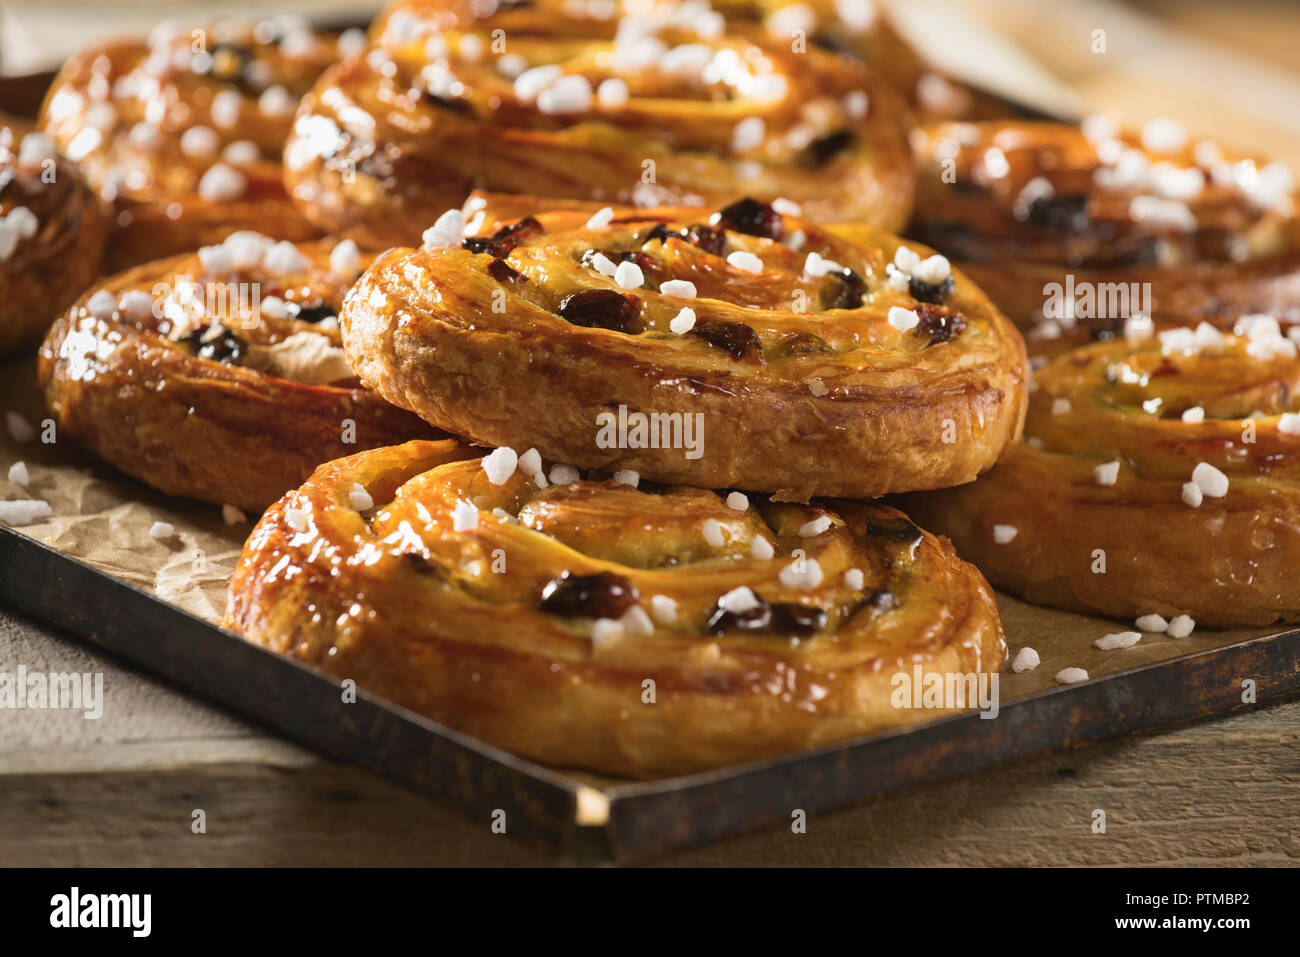 Pains aux raisins. French pastries. Food France - Stock Image